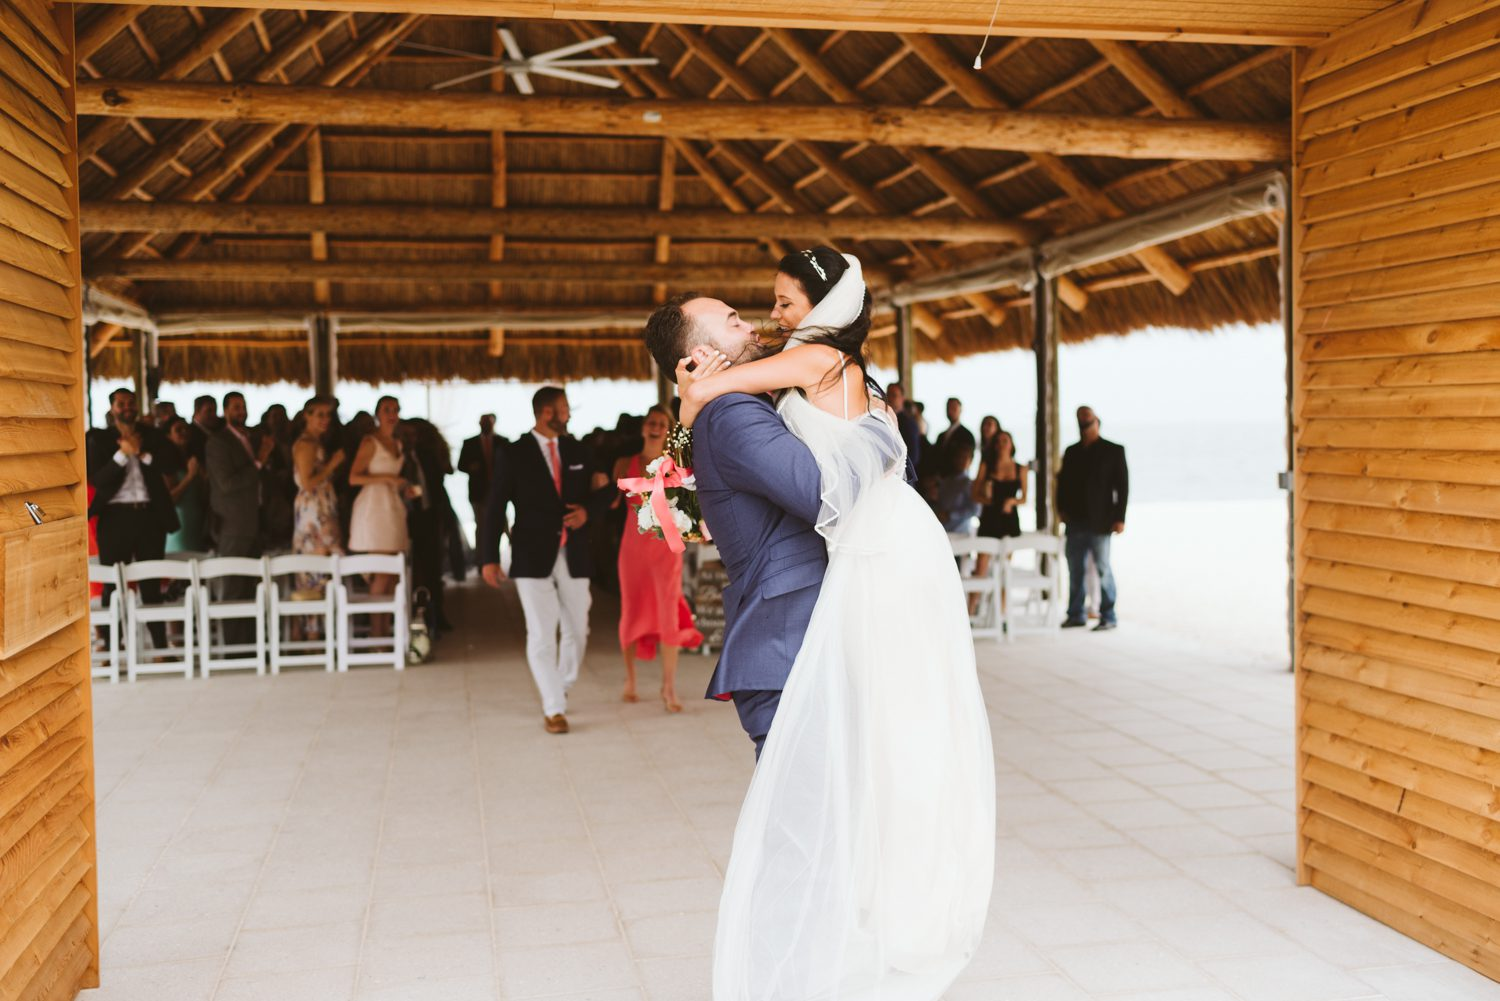 Postcard Inn at Holiday Isle Wedding Islamorada Wedding Photographer 294 - A Wedding Photographer in Key West - 2016 in Review